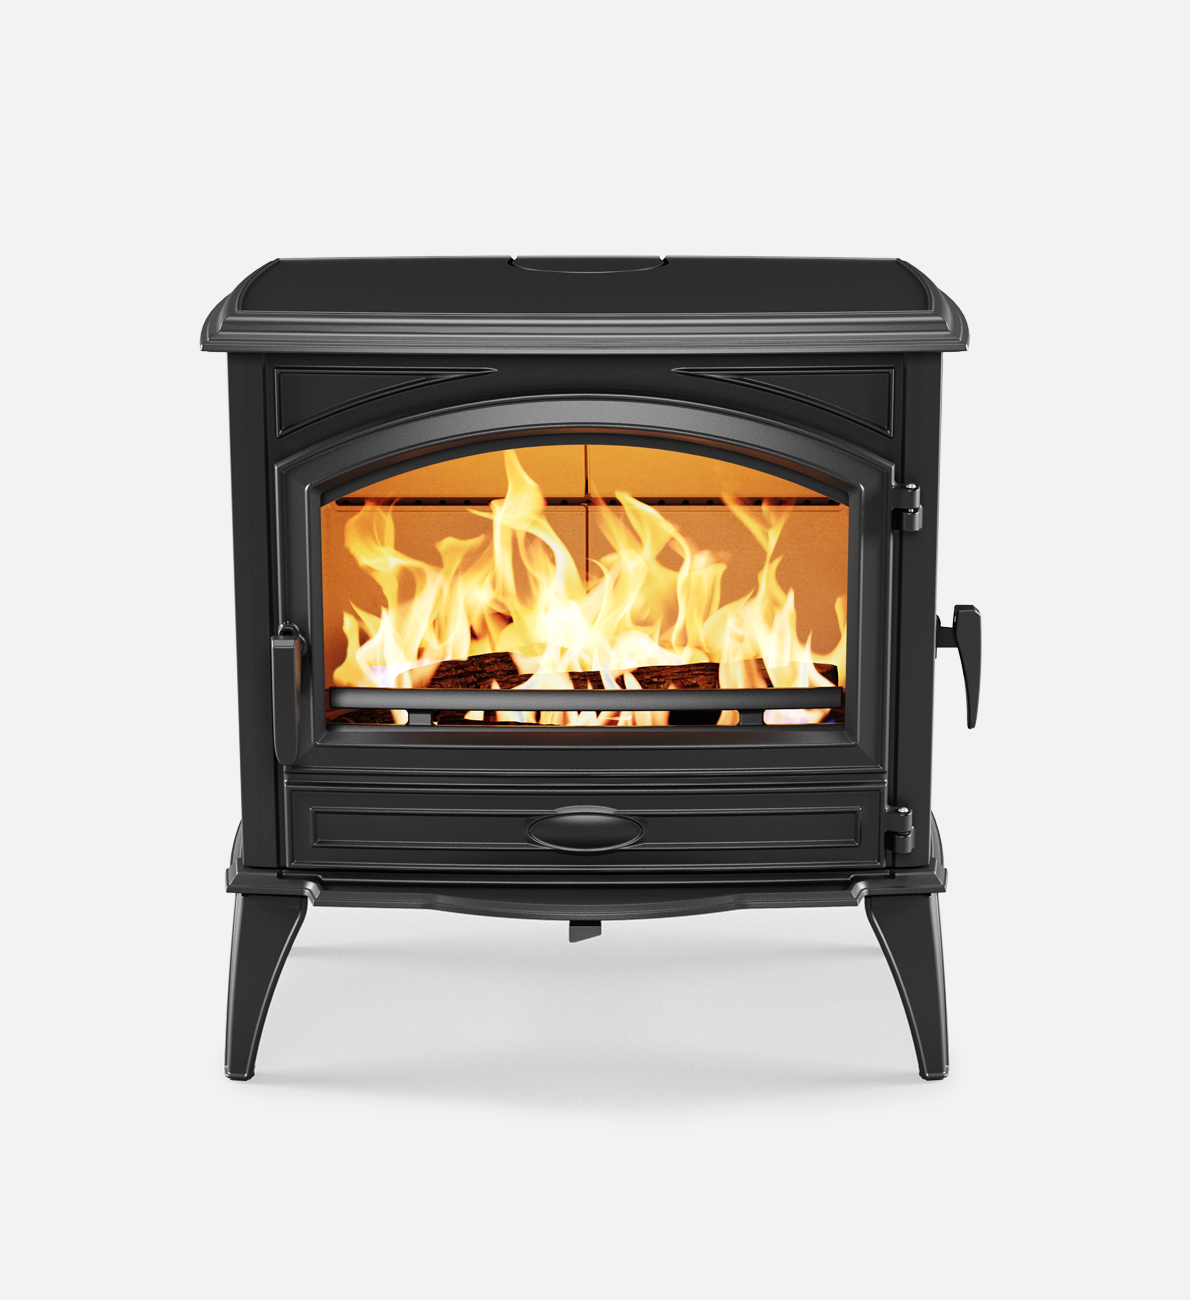 Dovre peisovn 760 wd front